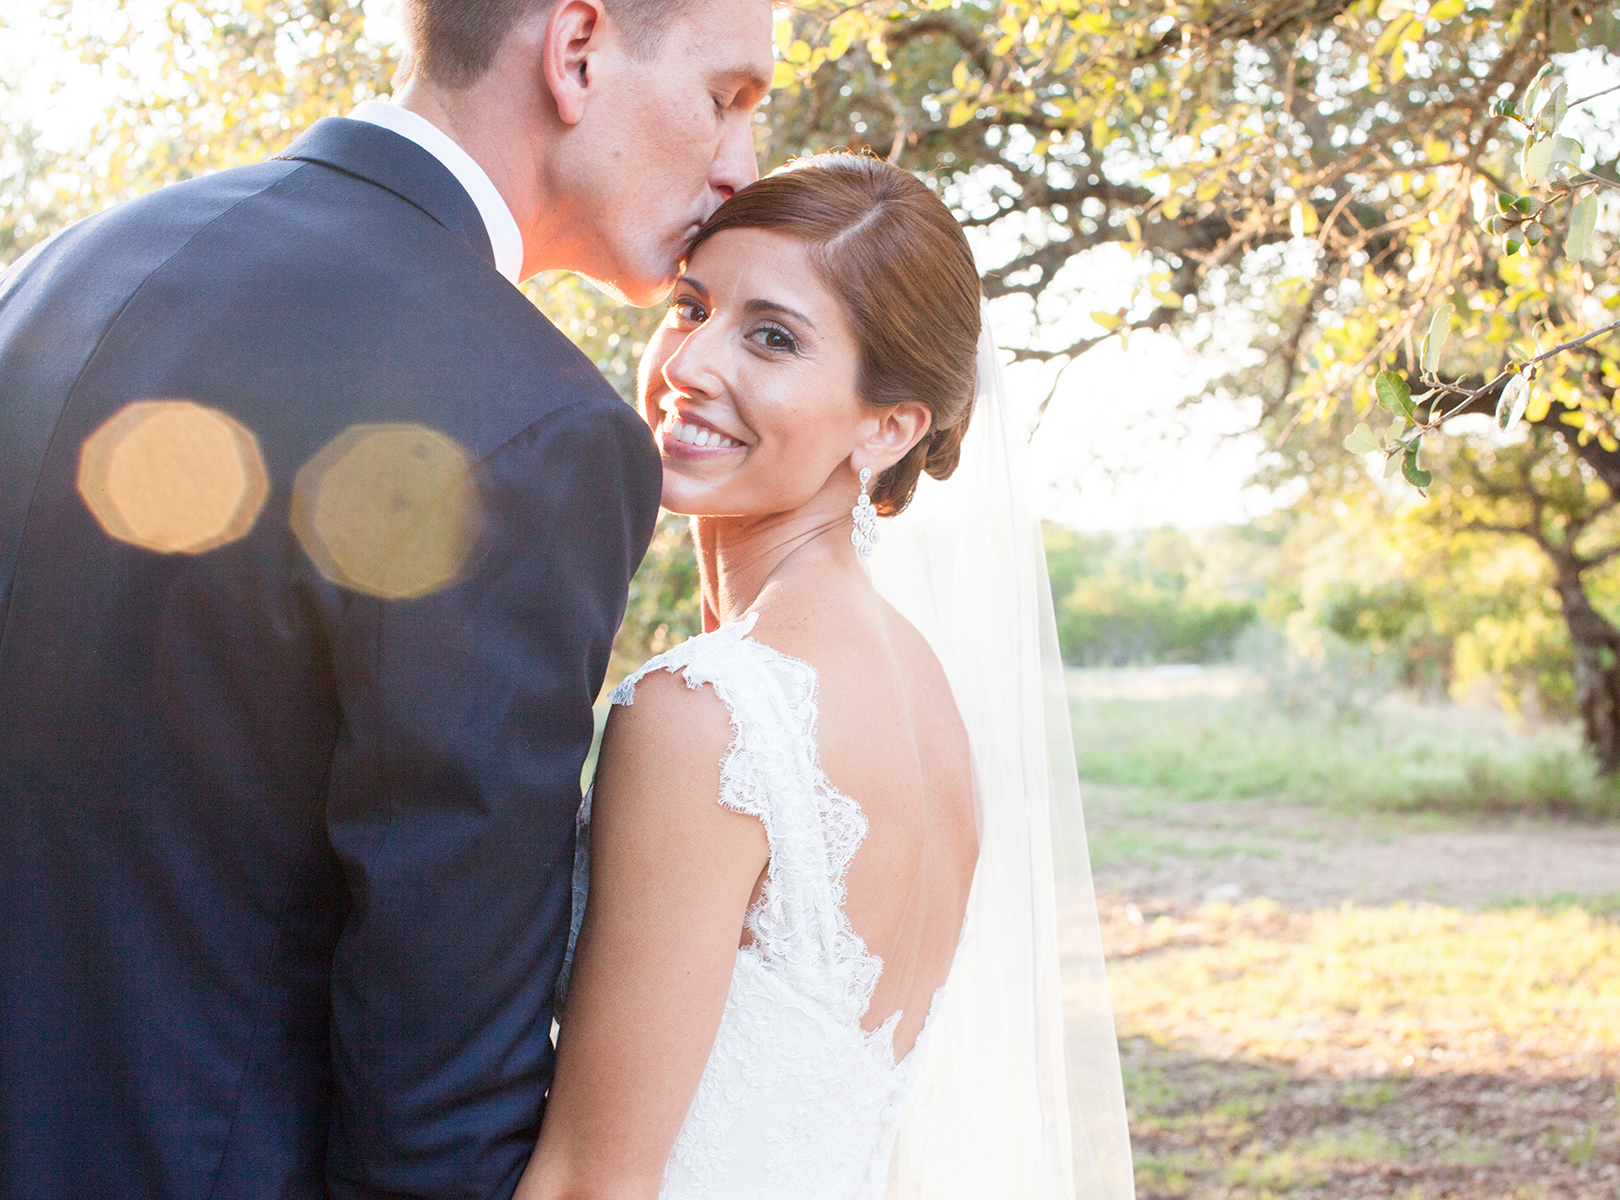 Vista West Ranch Wedding Photography, Dripping Springs Wedding Photography, Austin Weddings, Coordinate This, lacy bridal gown, backless wedding dress, bride and groom posing together in the setting sunlight, peaceful, Outdoor wedding, nature